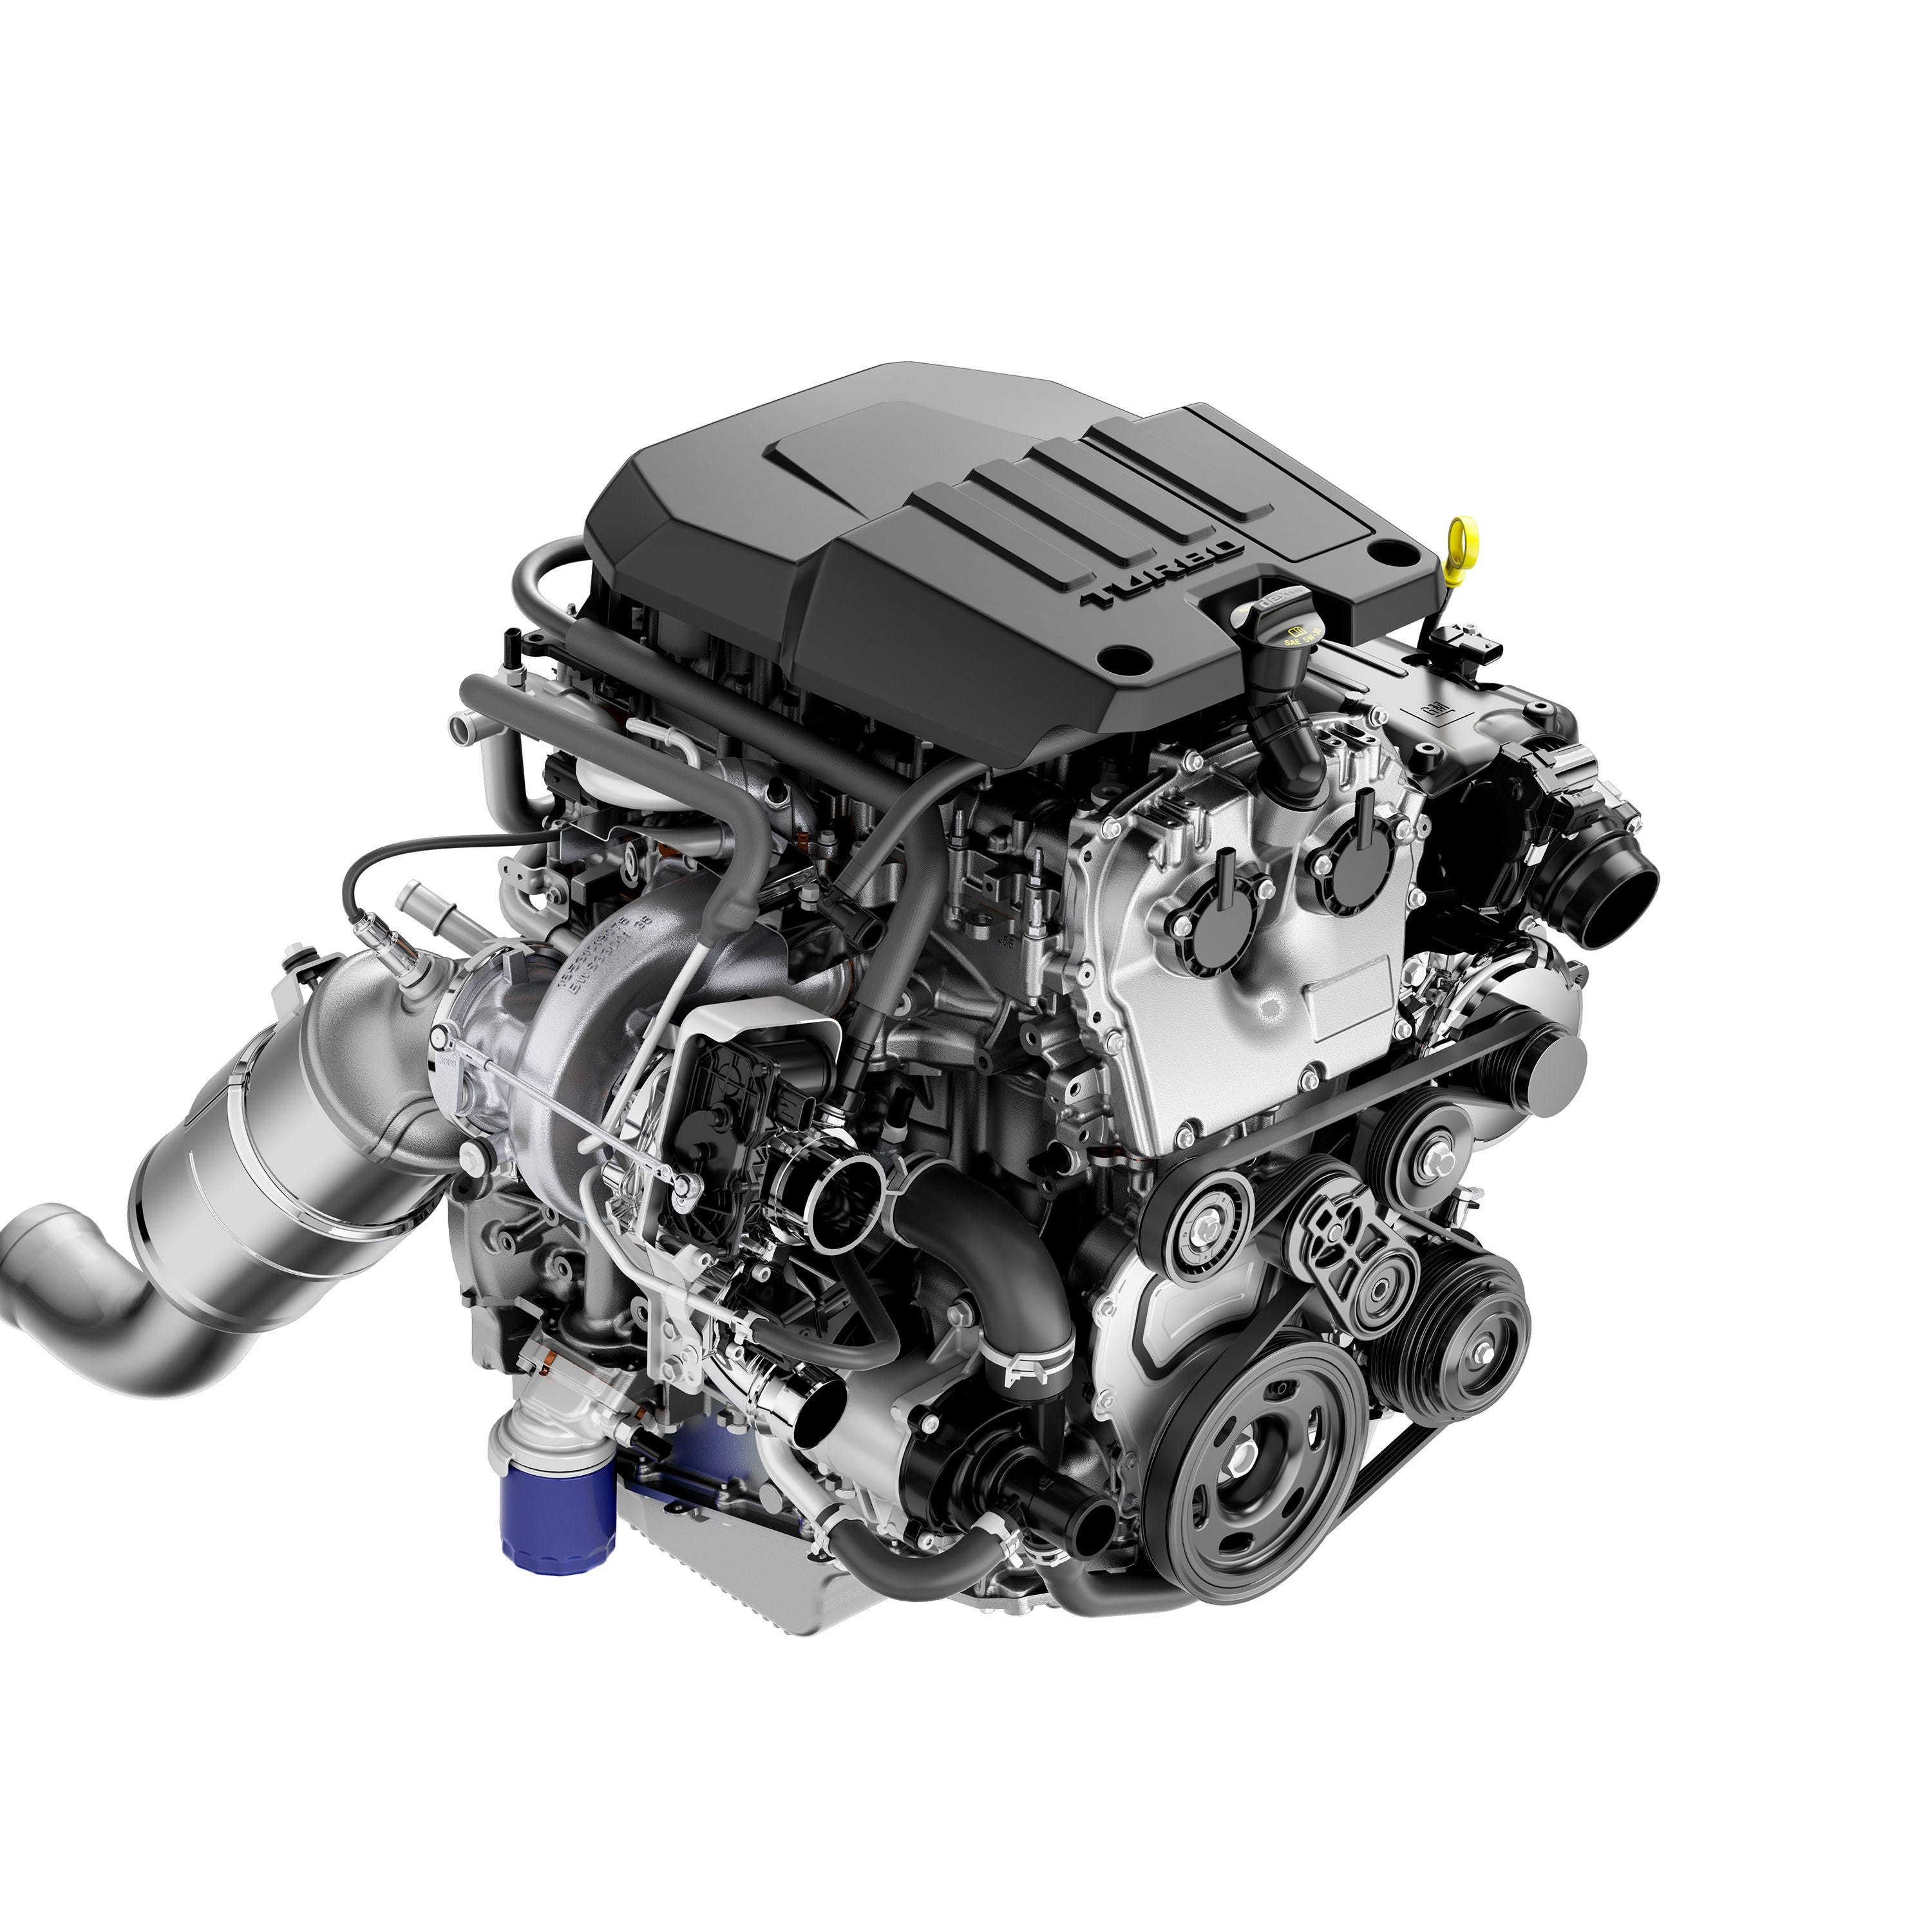 New Turbo Engine Boosts 2019 Chevy Silverado U2019s Fuel Economy